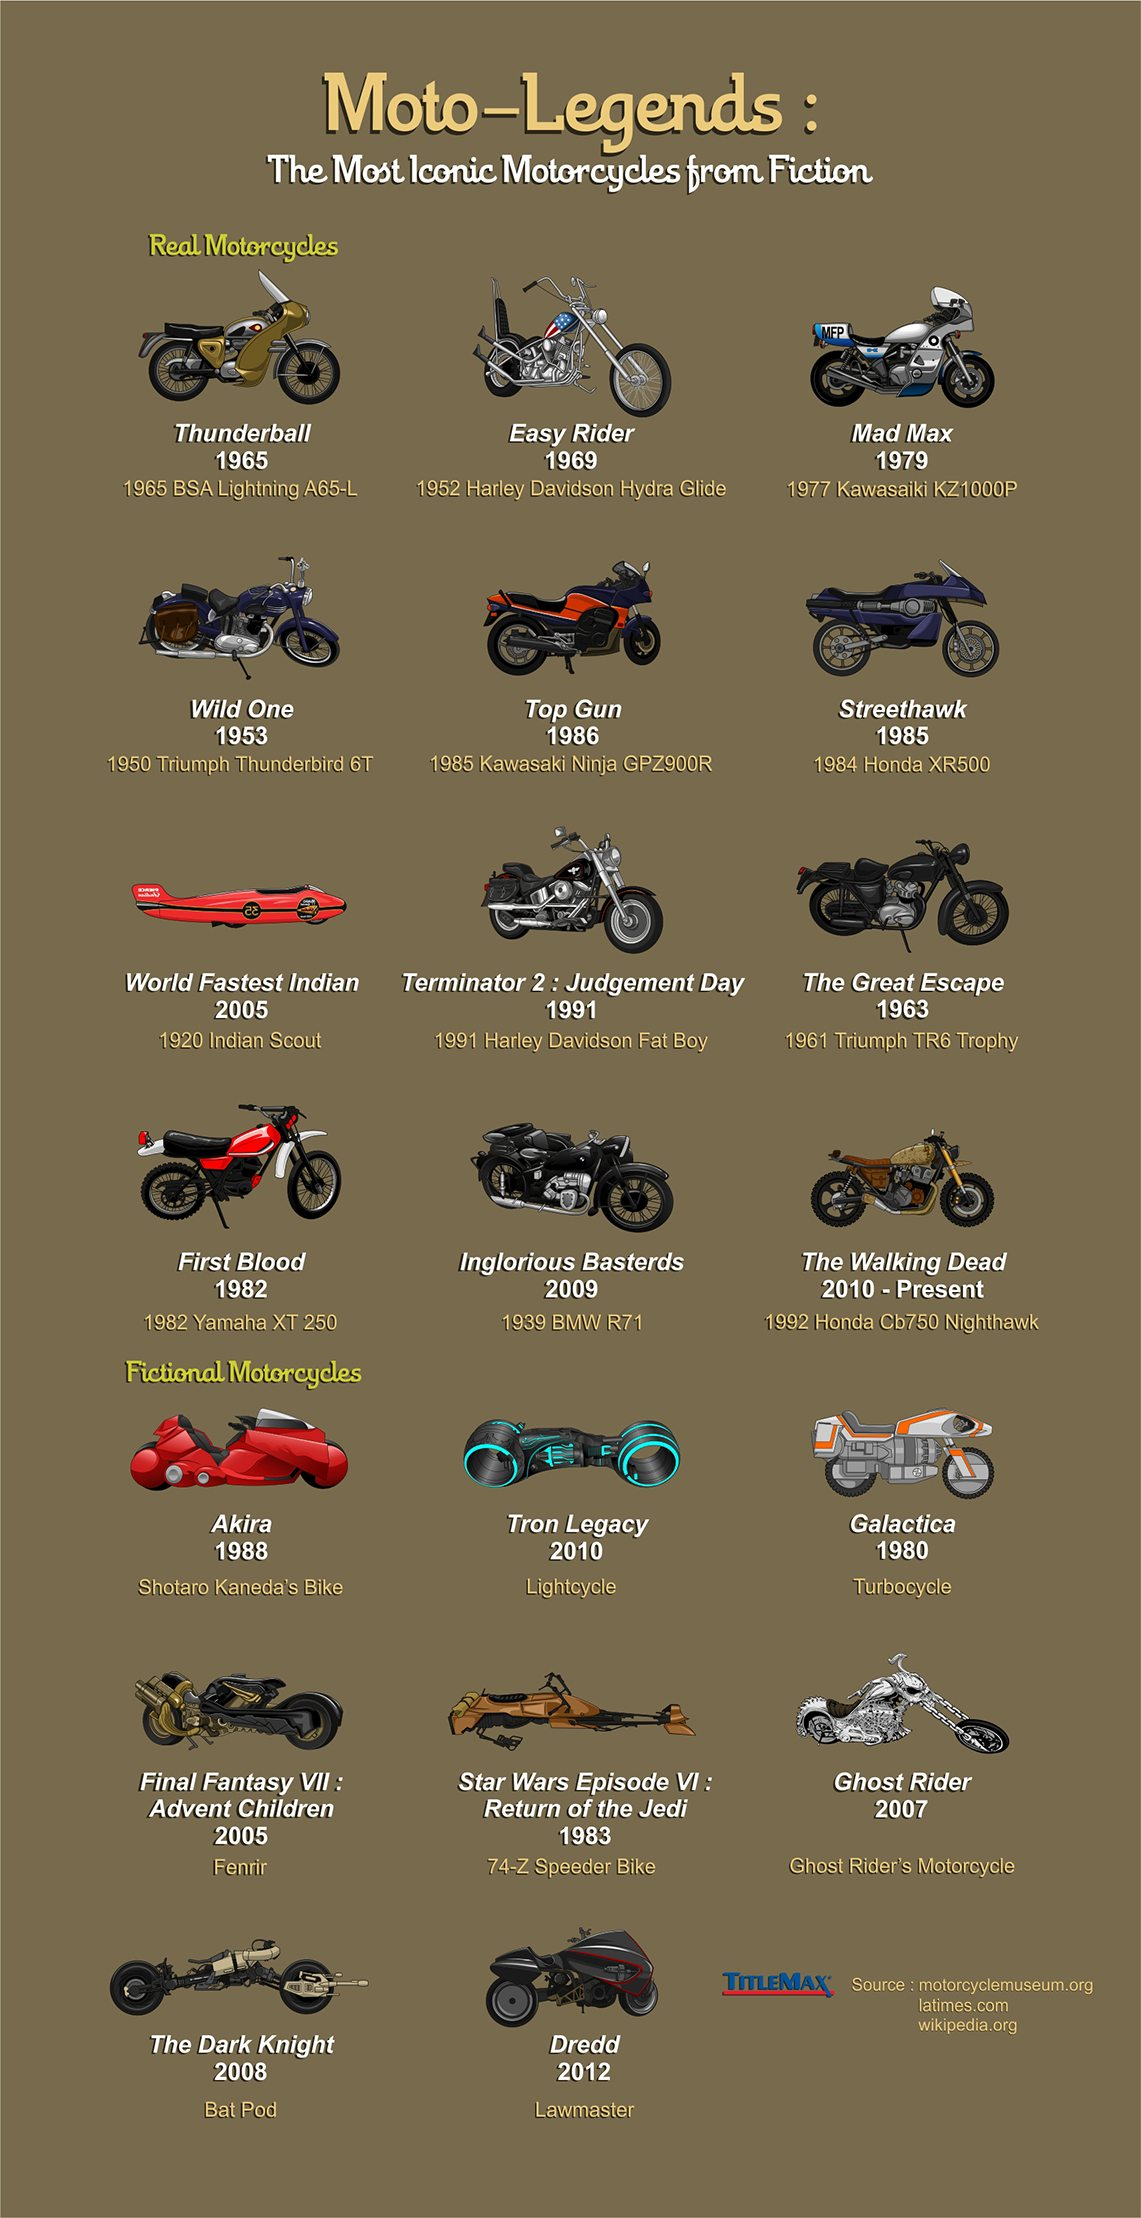 Iconic Fictional Motorcycles